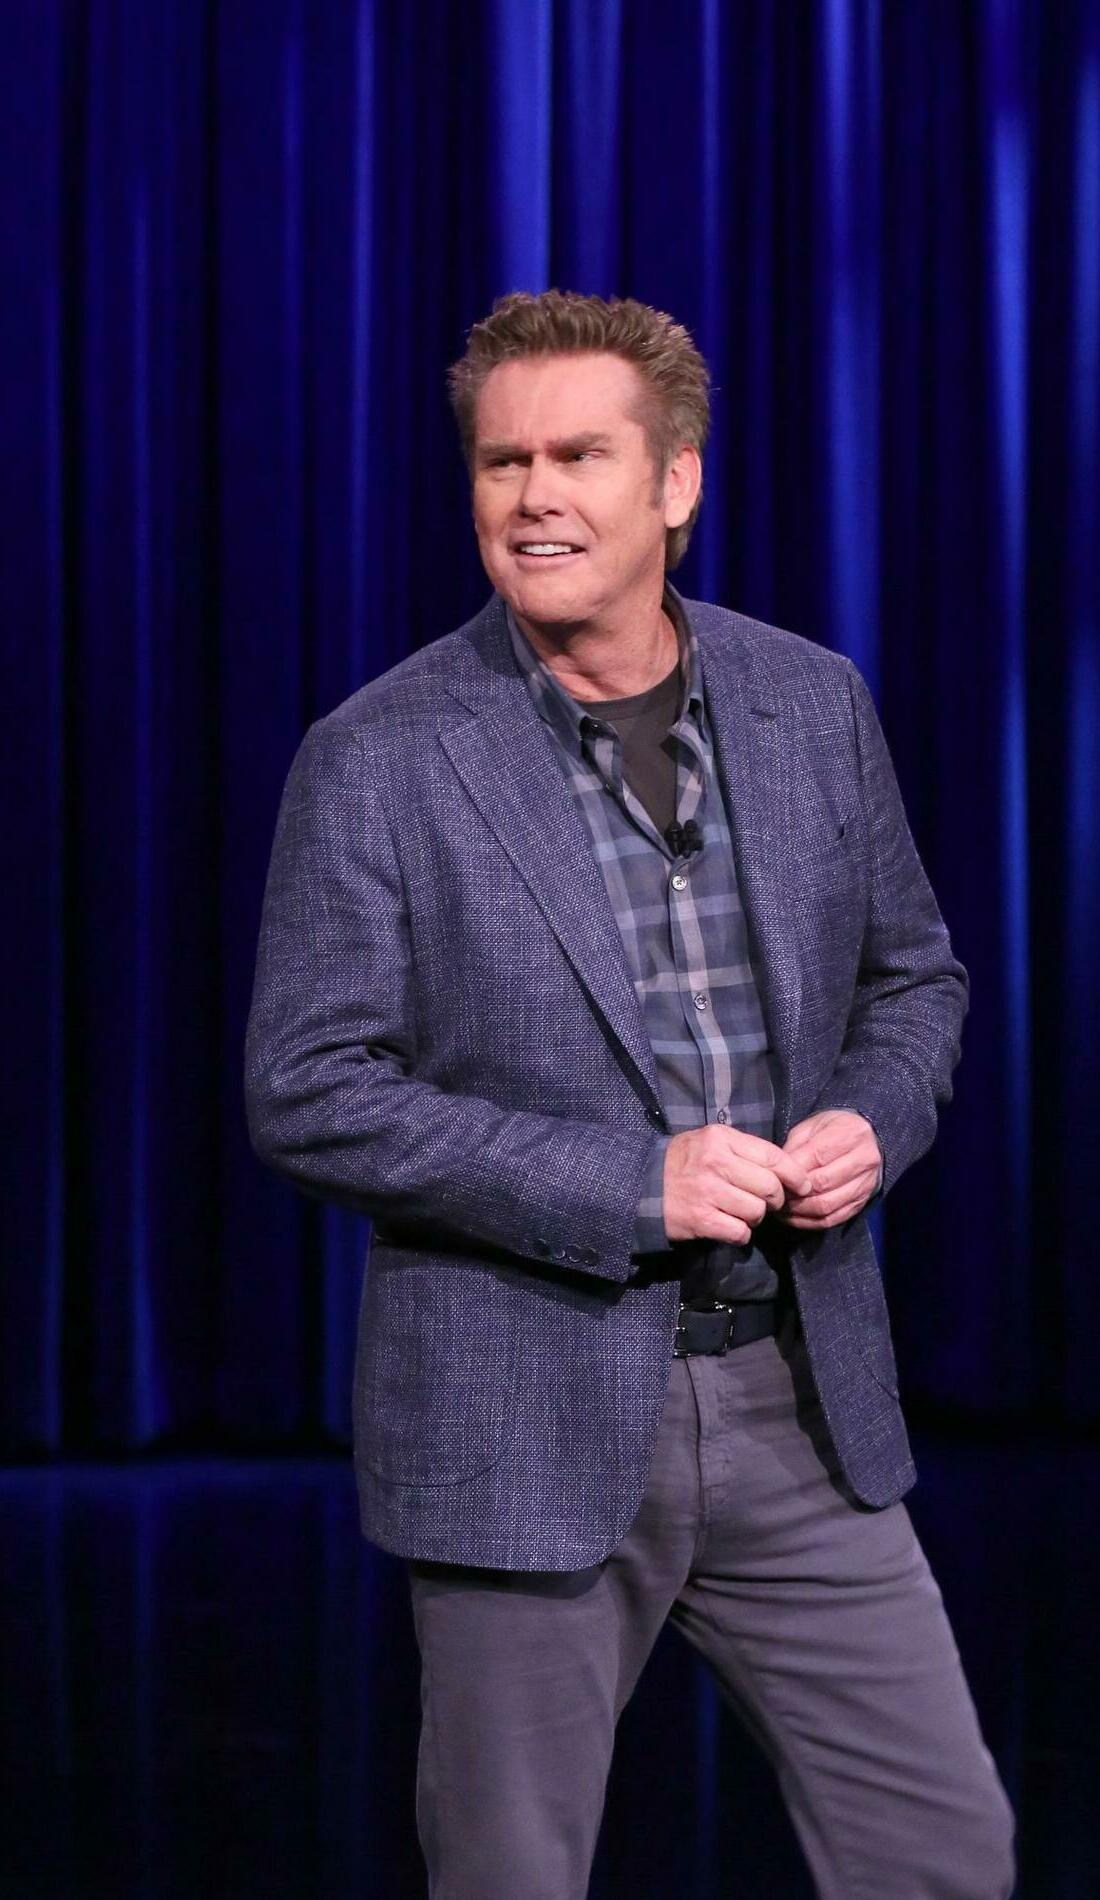 A Brian Regan live event